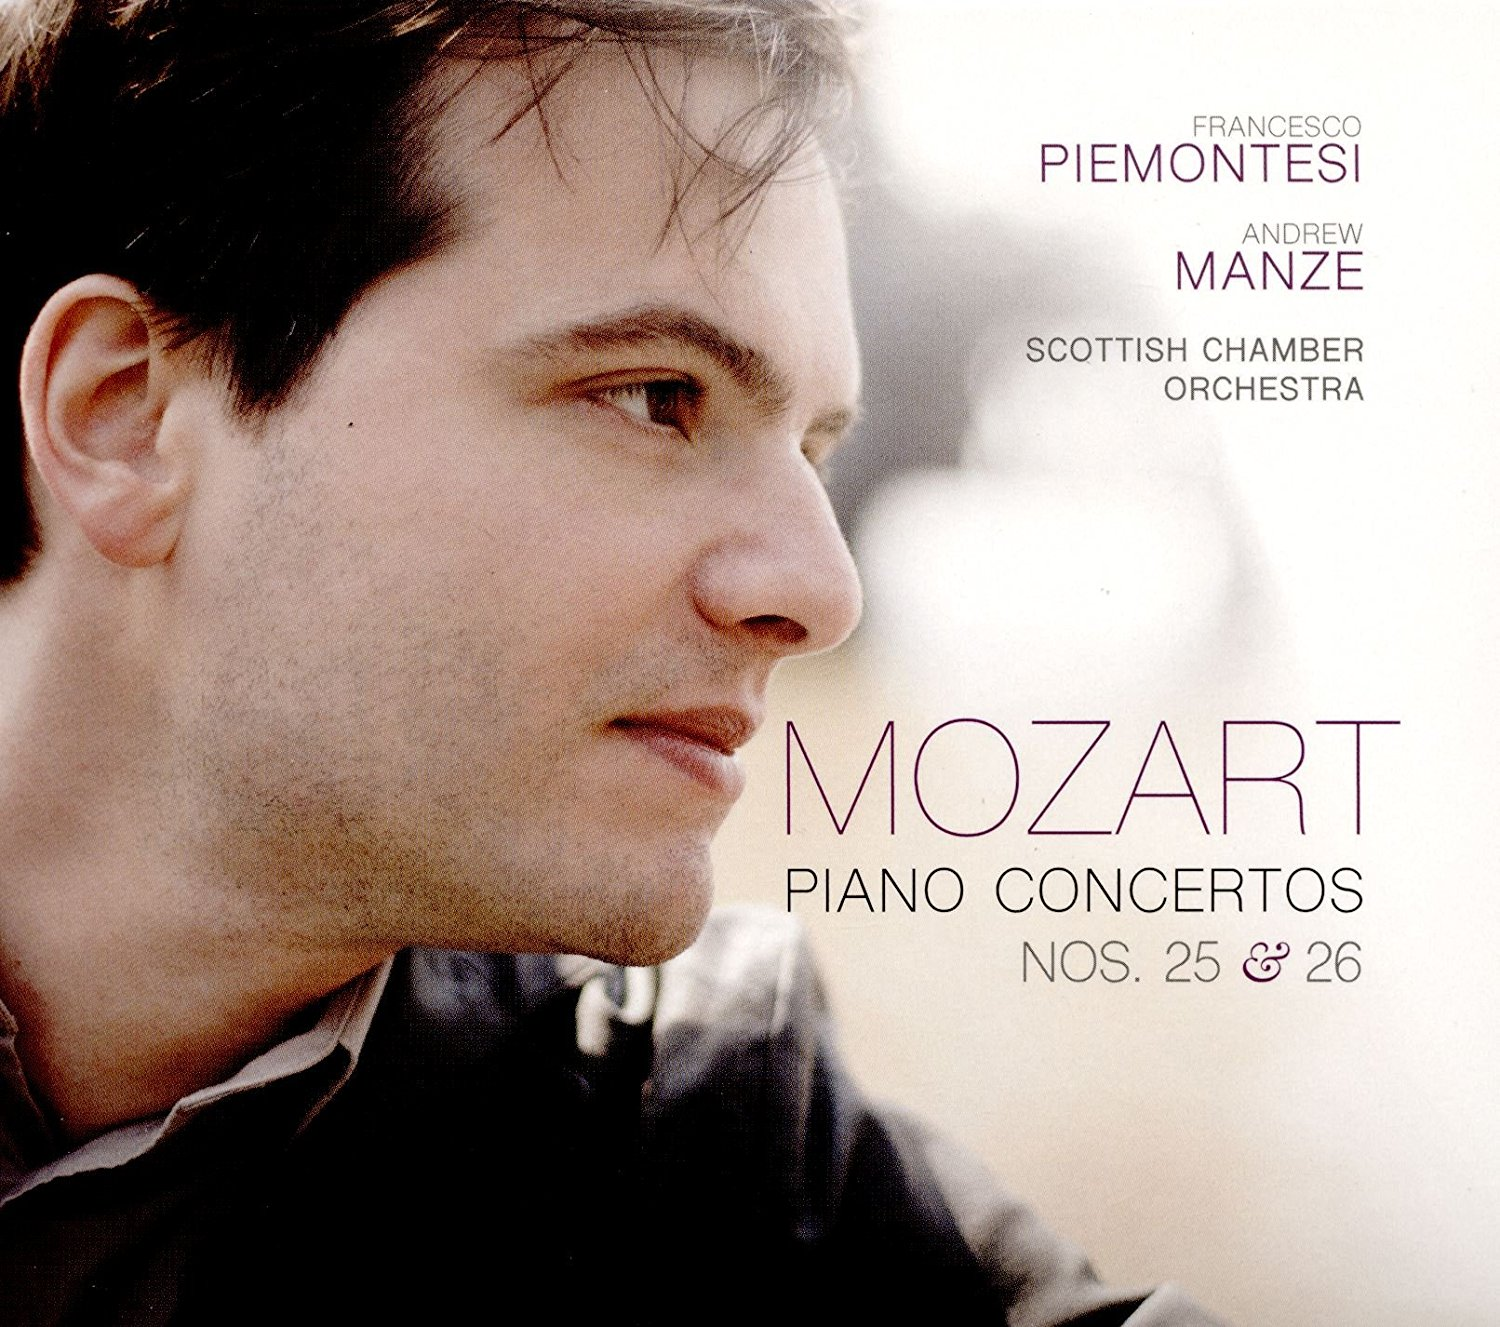 Mozart: Piano Concertos No. 25 & 26 - Francesco Pi